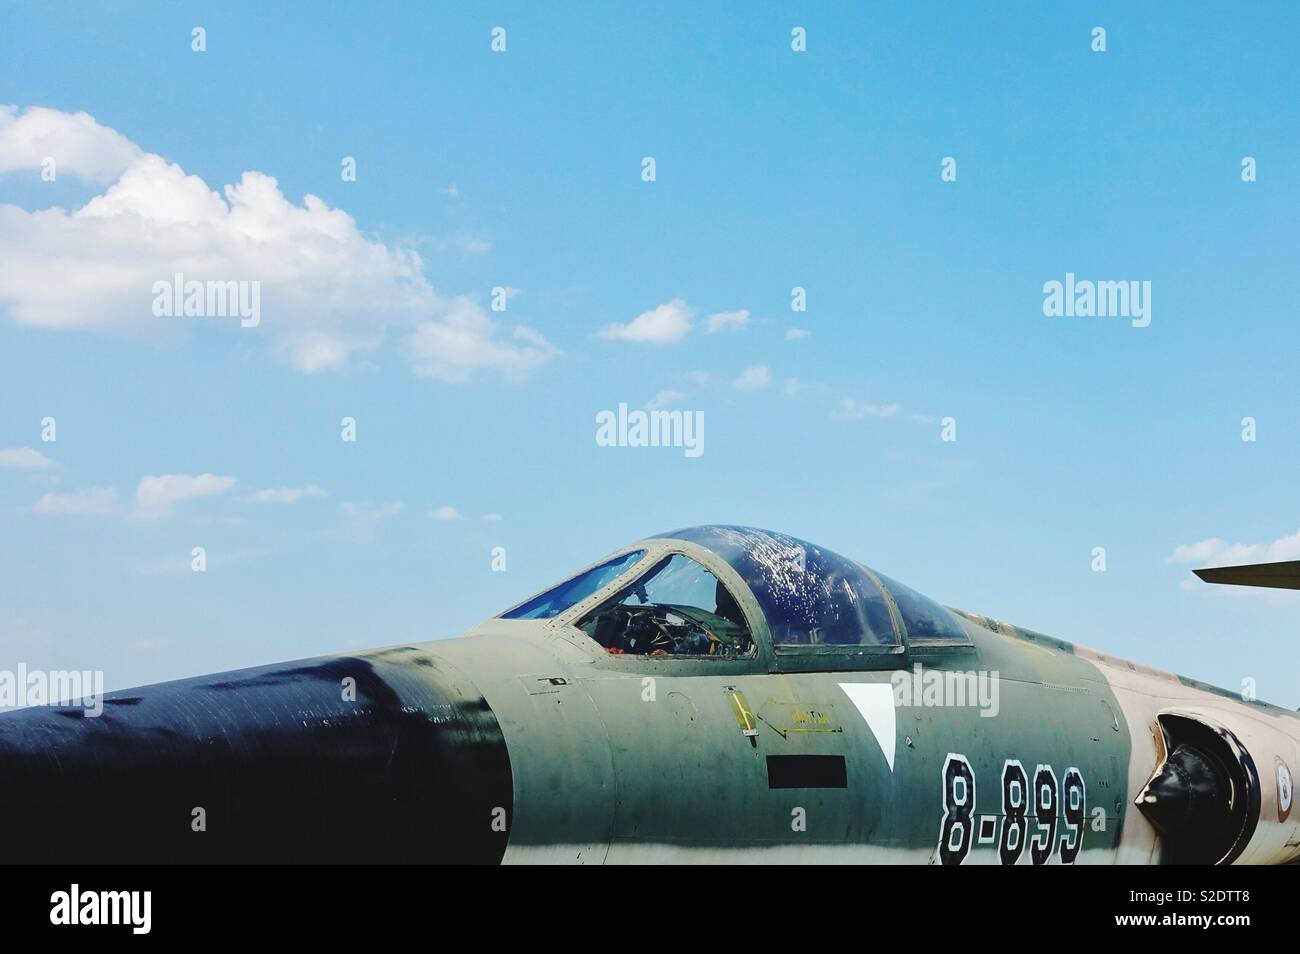 Old Russian fighter jet. Cockpit in front of clear sky - Stock Image